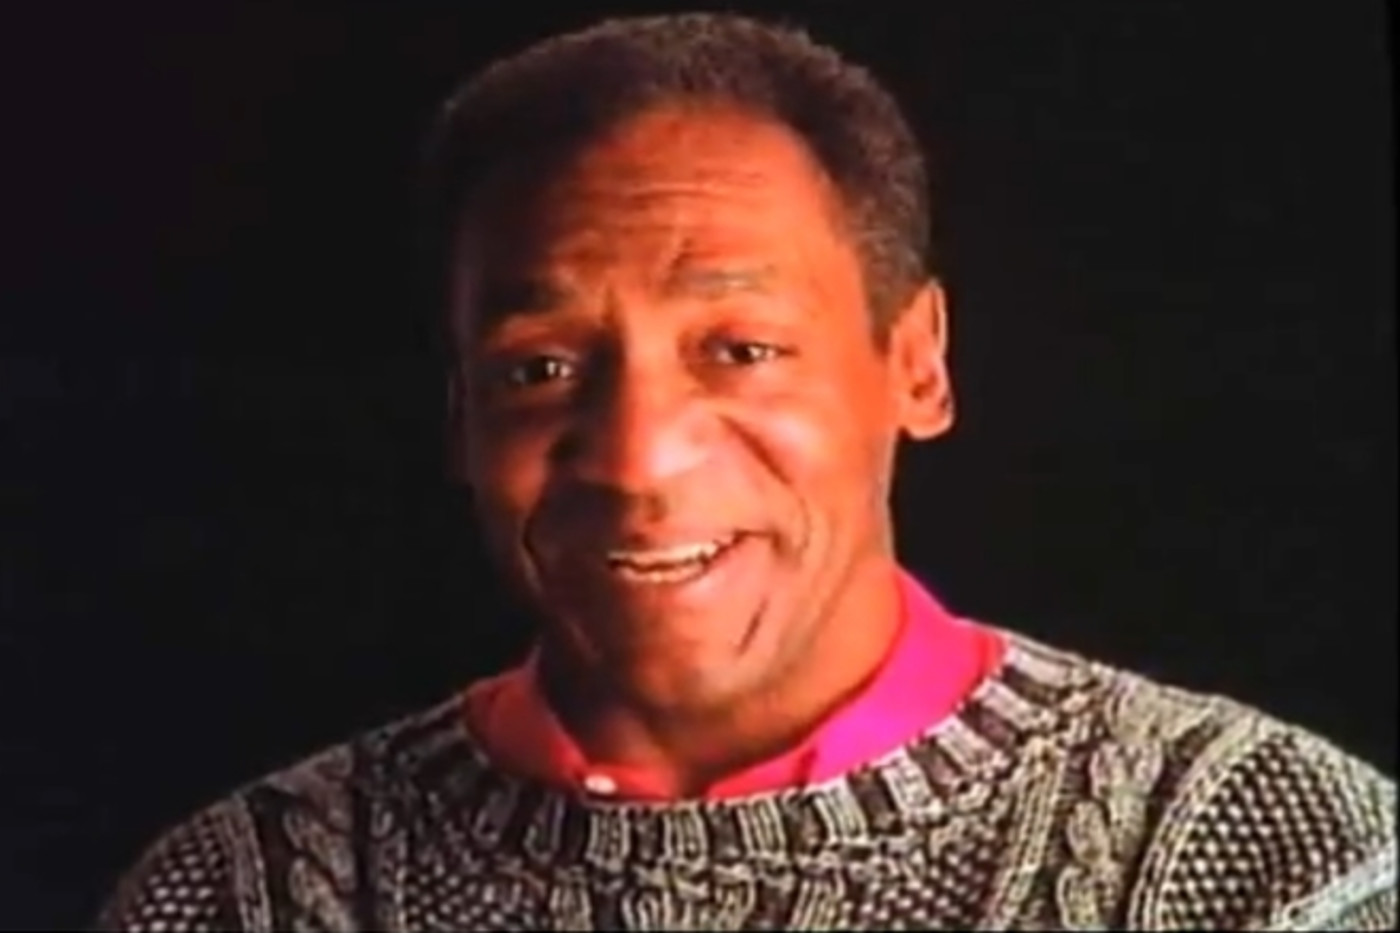 Bill Cosby public service announcement by the National Science Foundation